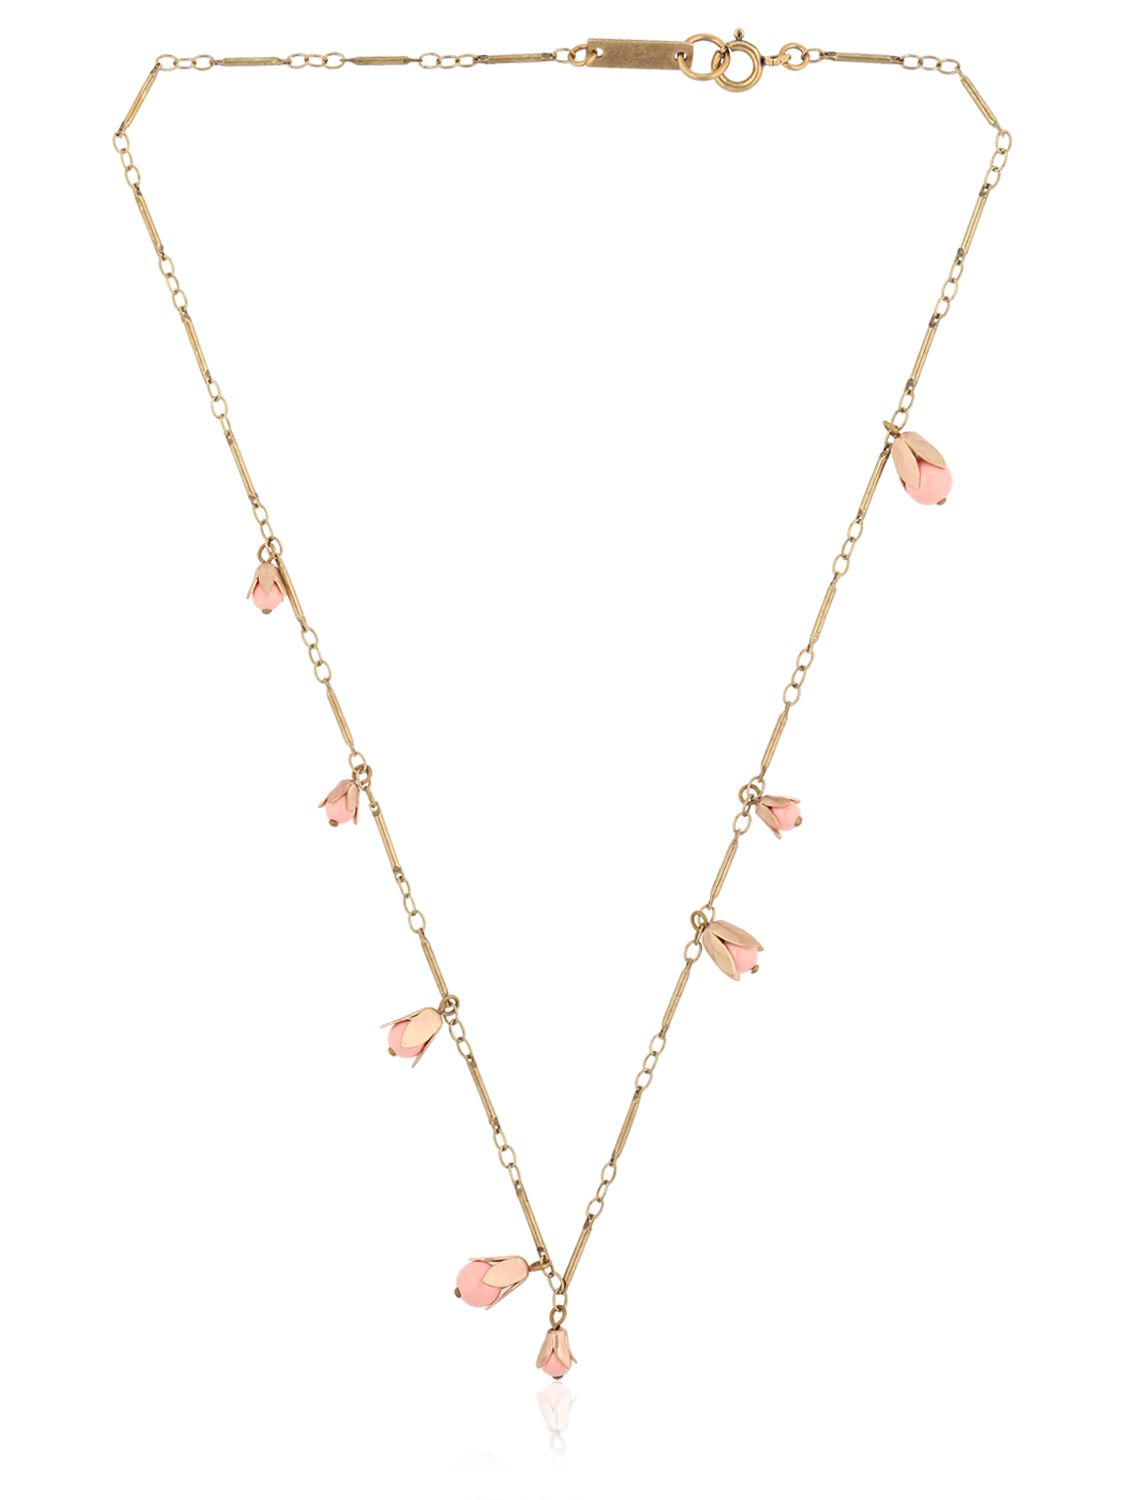 Isabel Marant Fes Necklace in Metallics,White